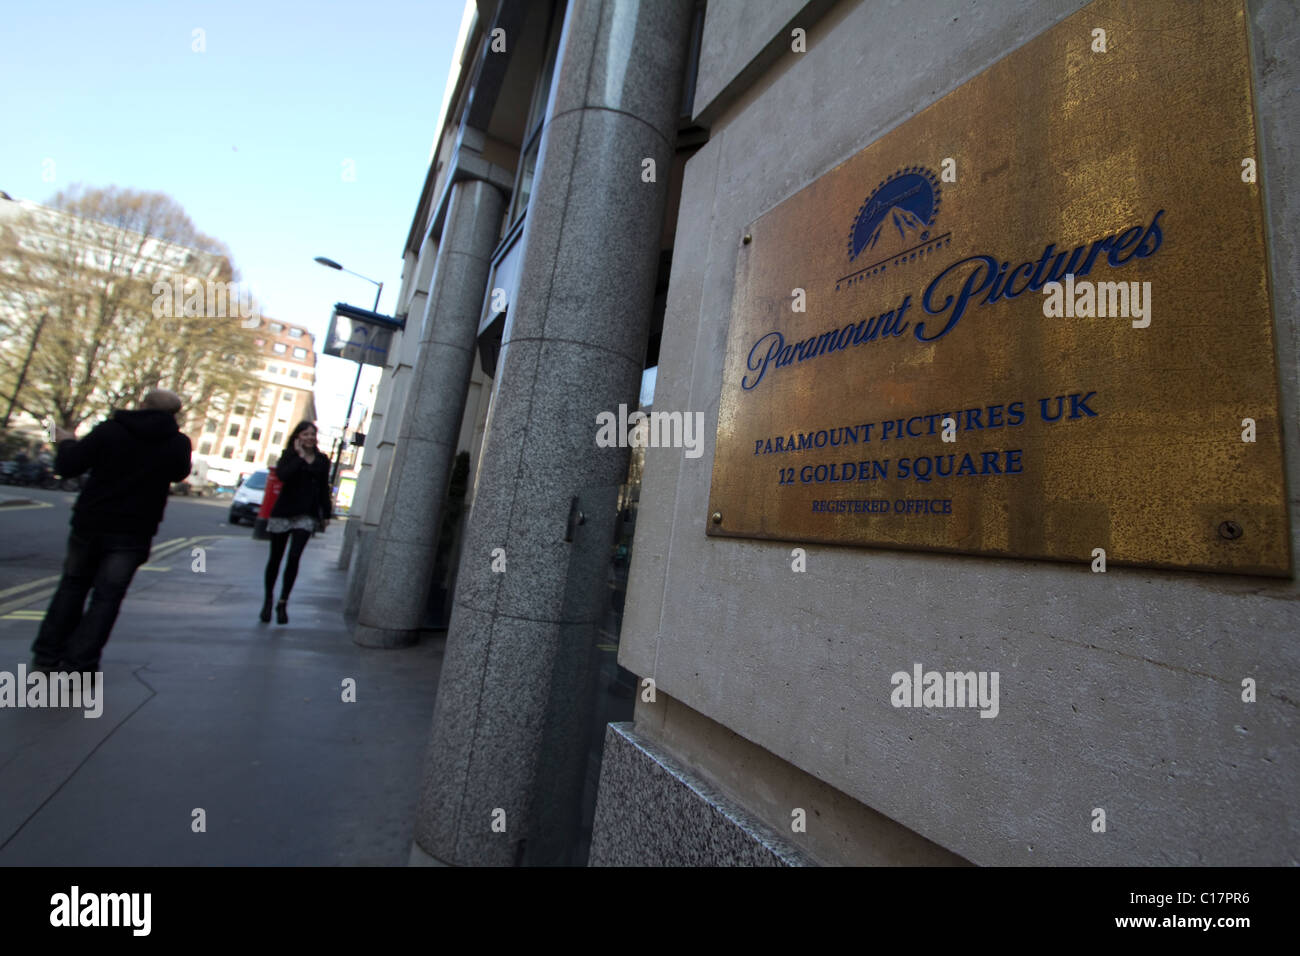 Paramount pictures offices London - Stock Image